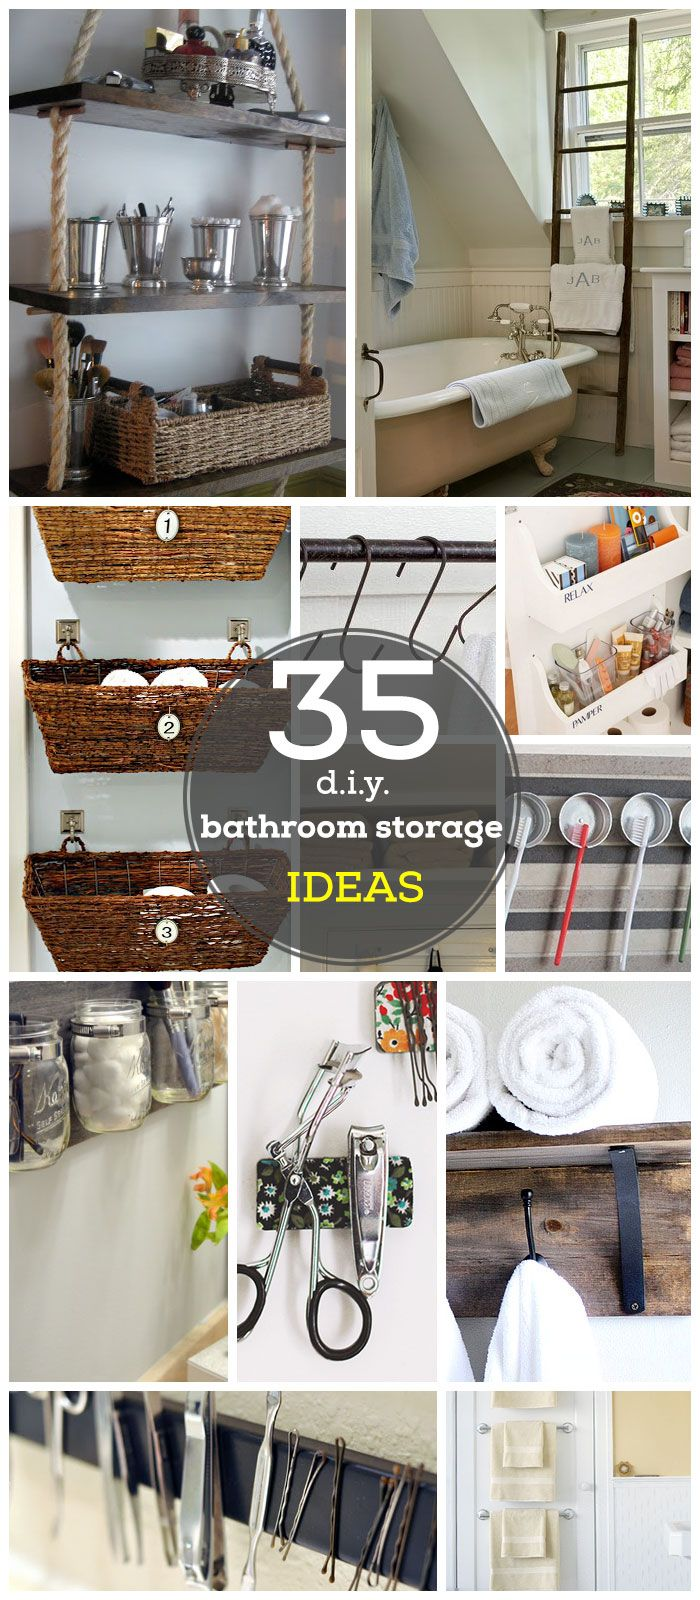 35 DIY Bathroom Storage Ideas on a Budget | DIY Bathroom Organization Ideas